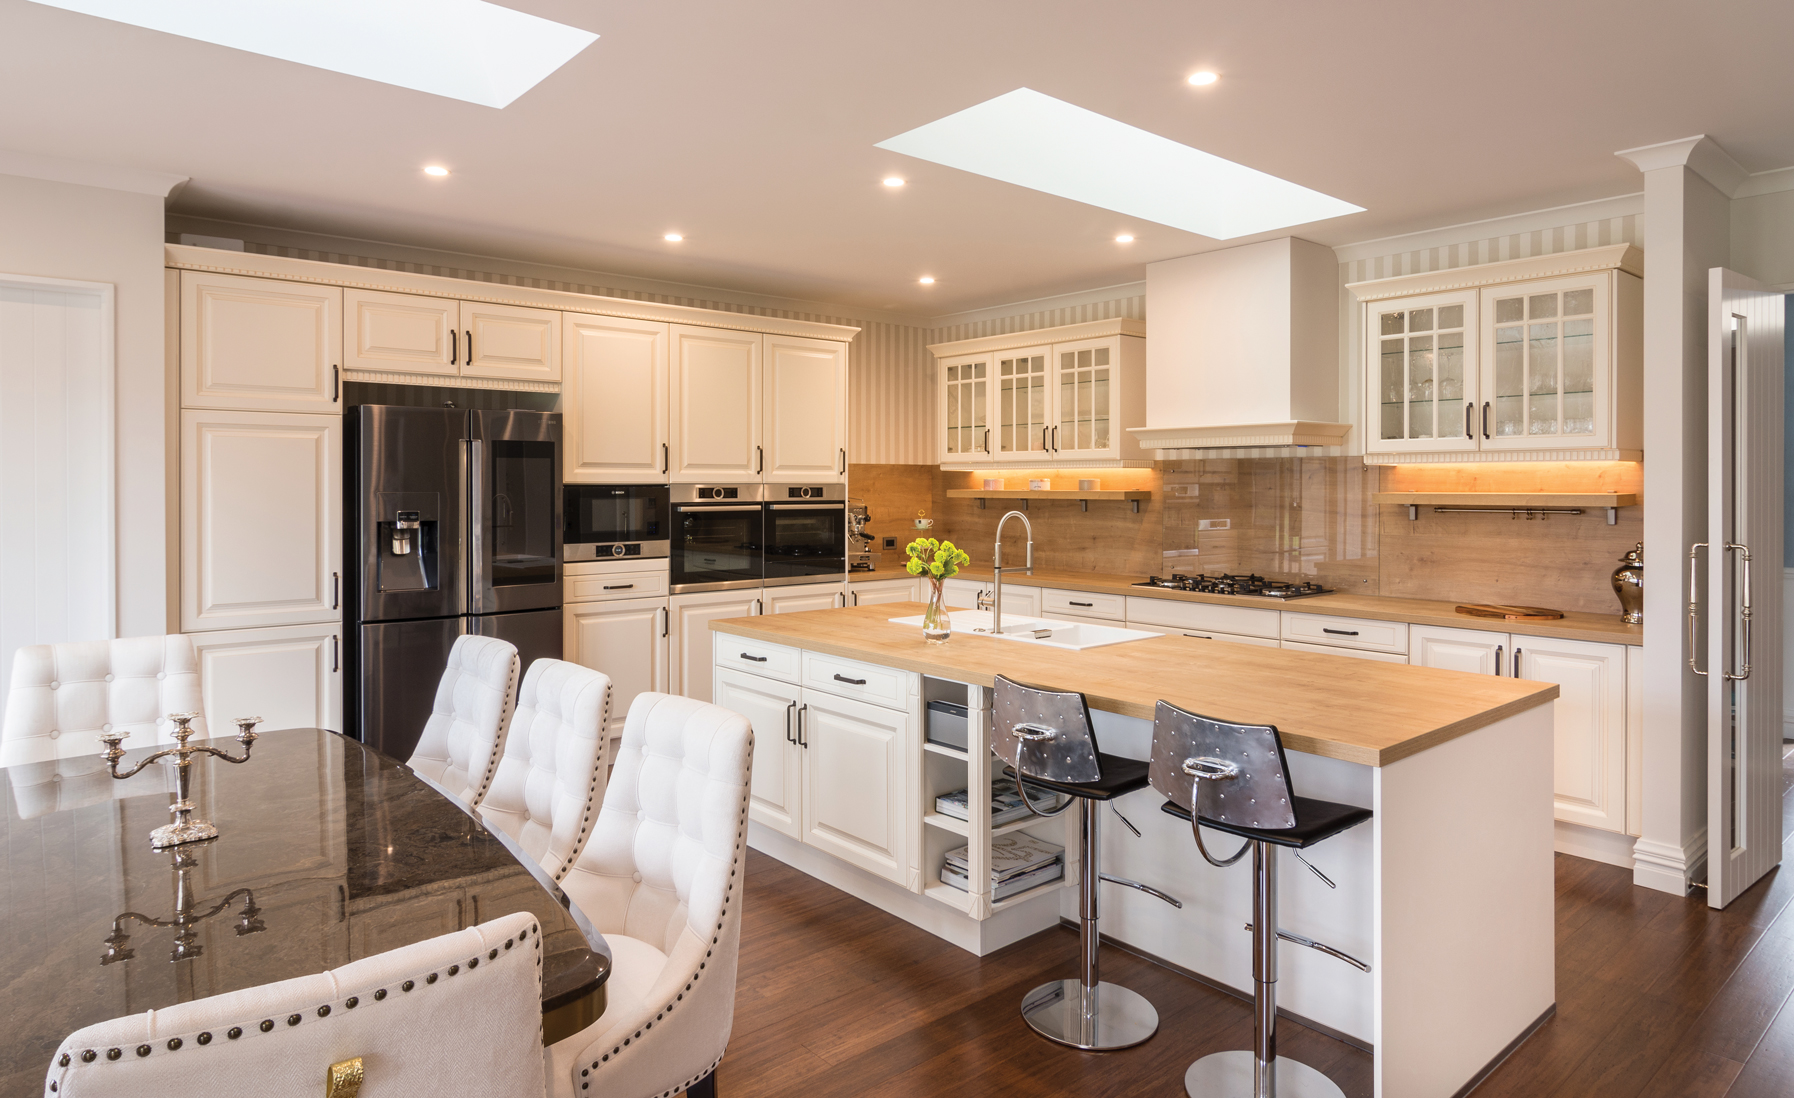 KITCHEN:  Palazzo Kitchens designed and installed the country classic kitchen complete with large kitchen island.